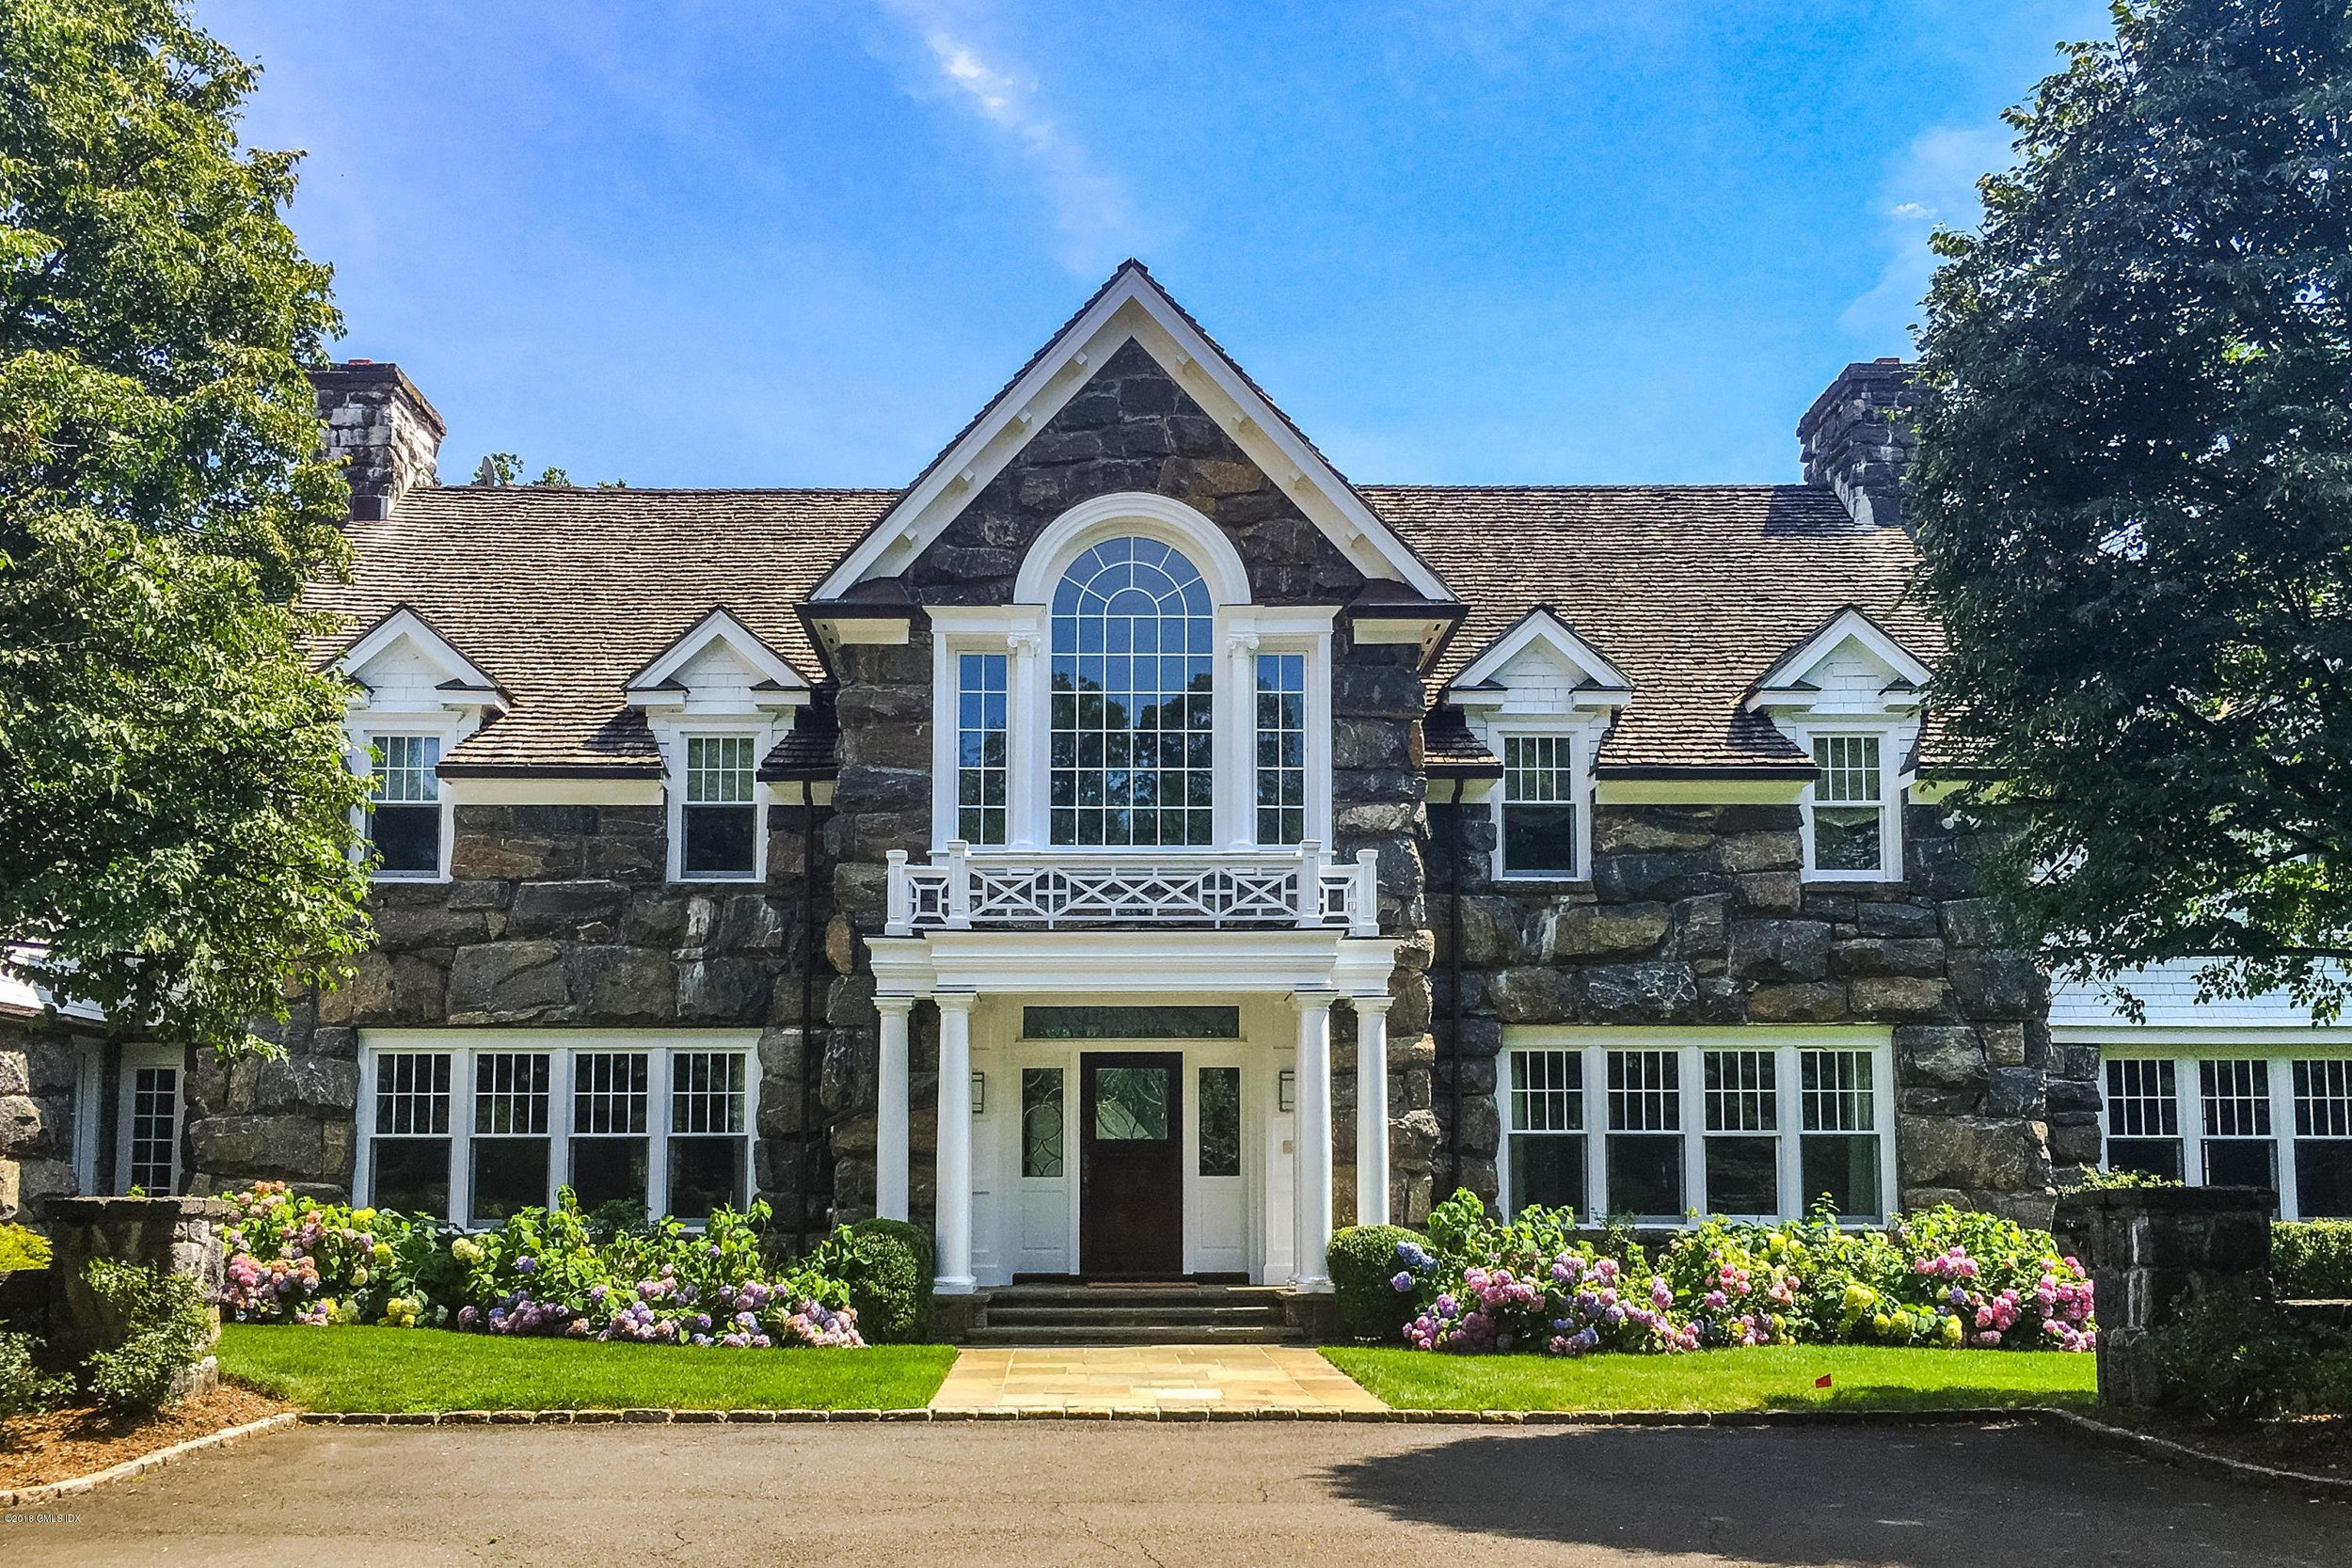 200 Old Mill Road. sold 2006, $6.3 million. Going begging today, asking $4.450. Current assessment: $6,389,100.  Just sayin'.